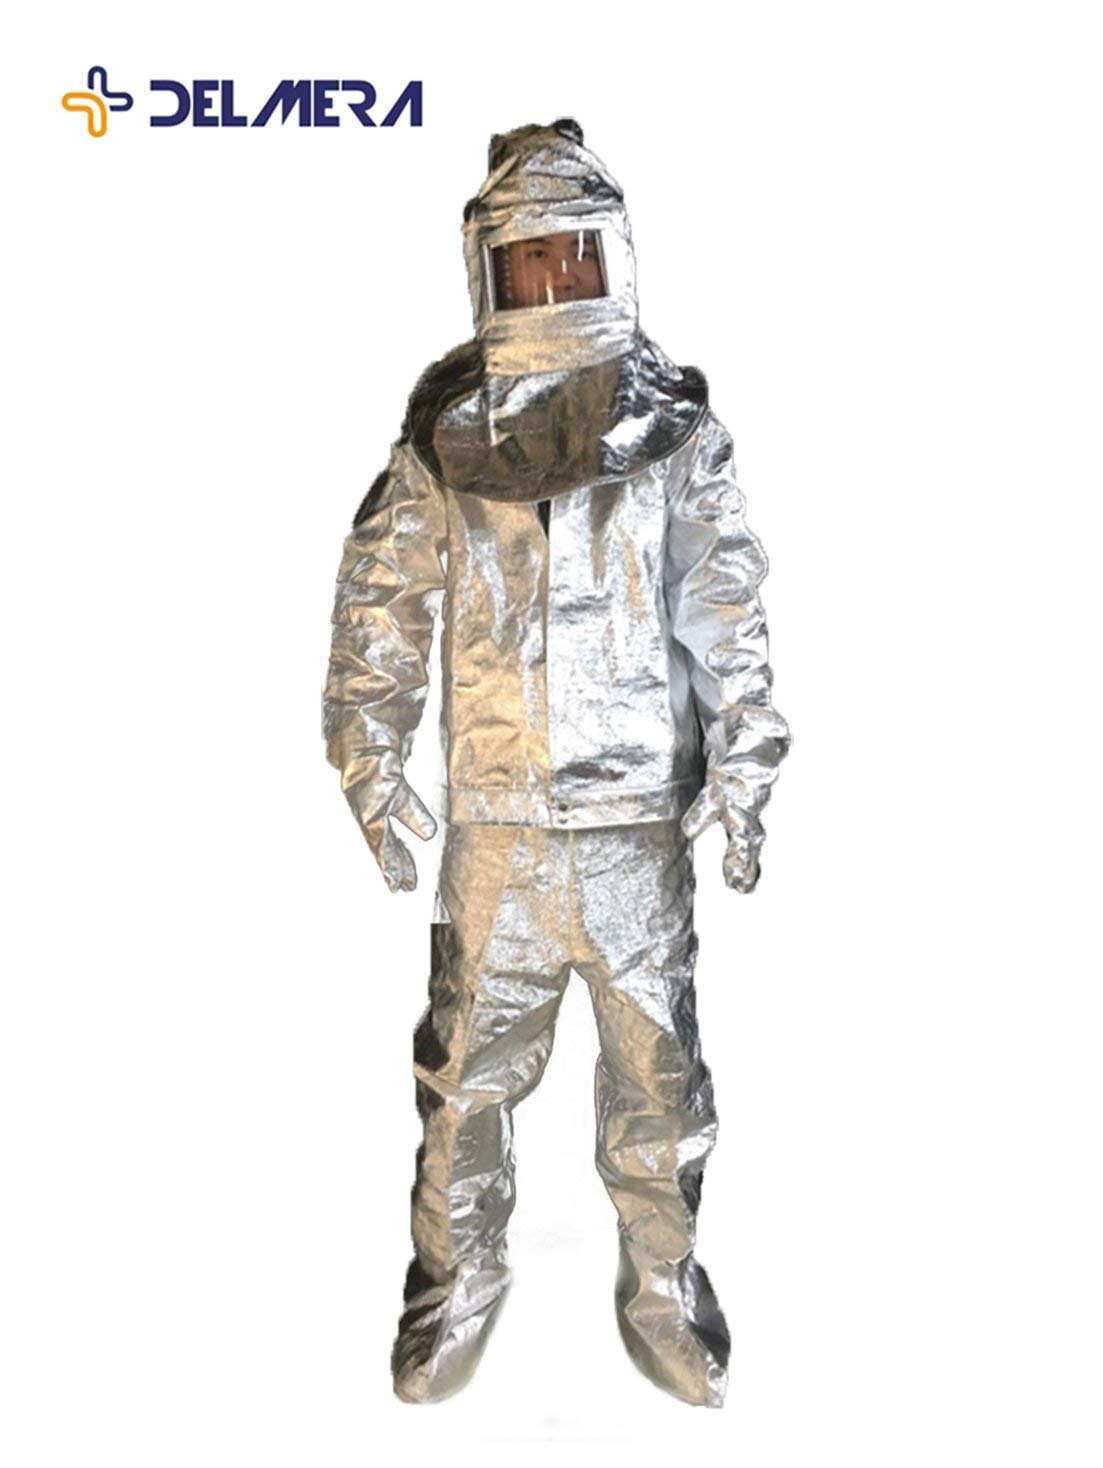 0fb336f0213 Get Quotations · Delmera Aluminized Flame Resistant 500℃ Safety Fire Work  Suit Fire Resistant Coverall Heat Protective Clothing